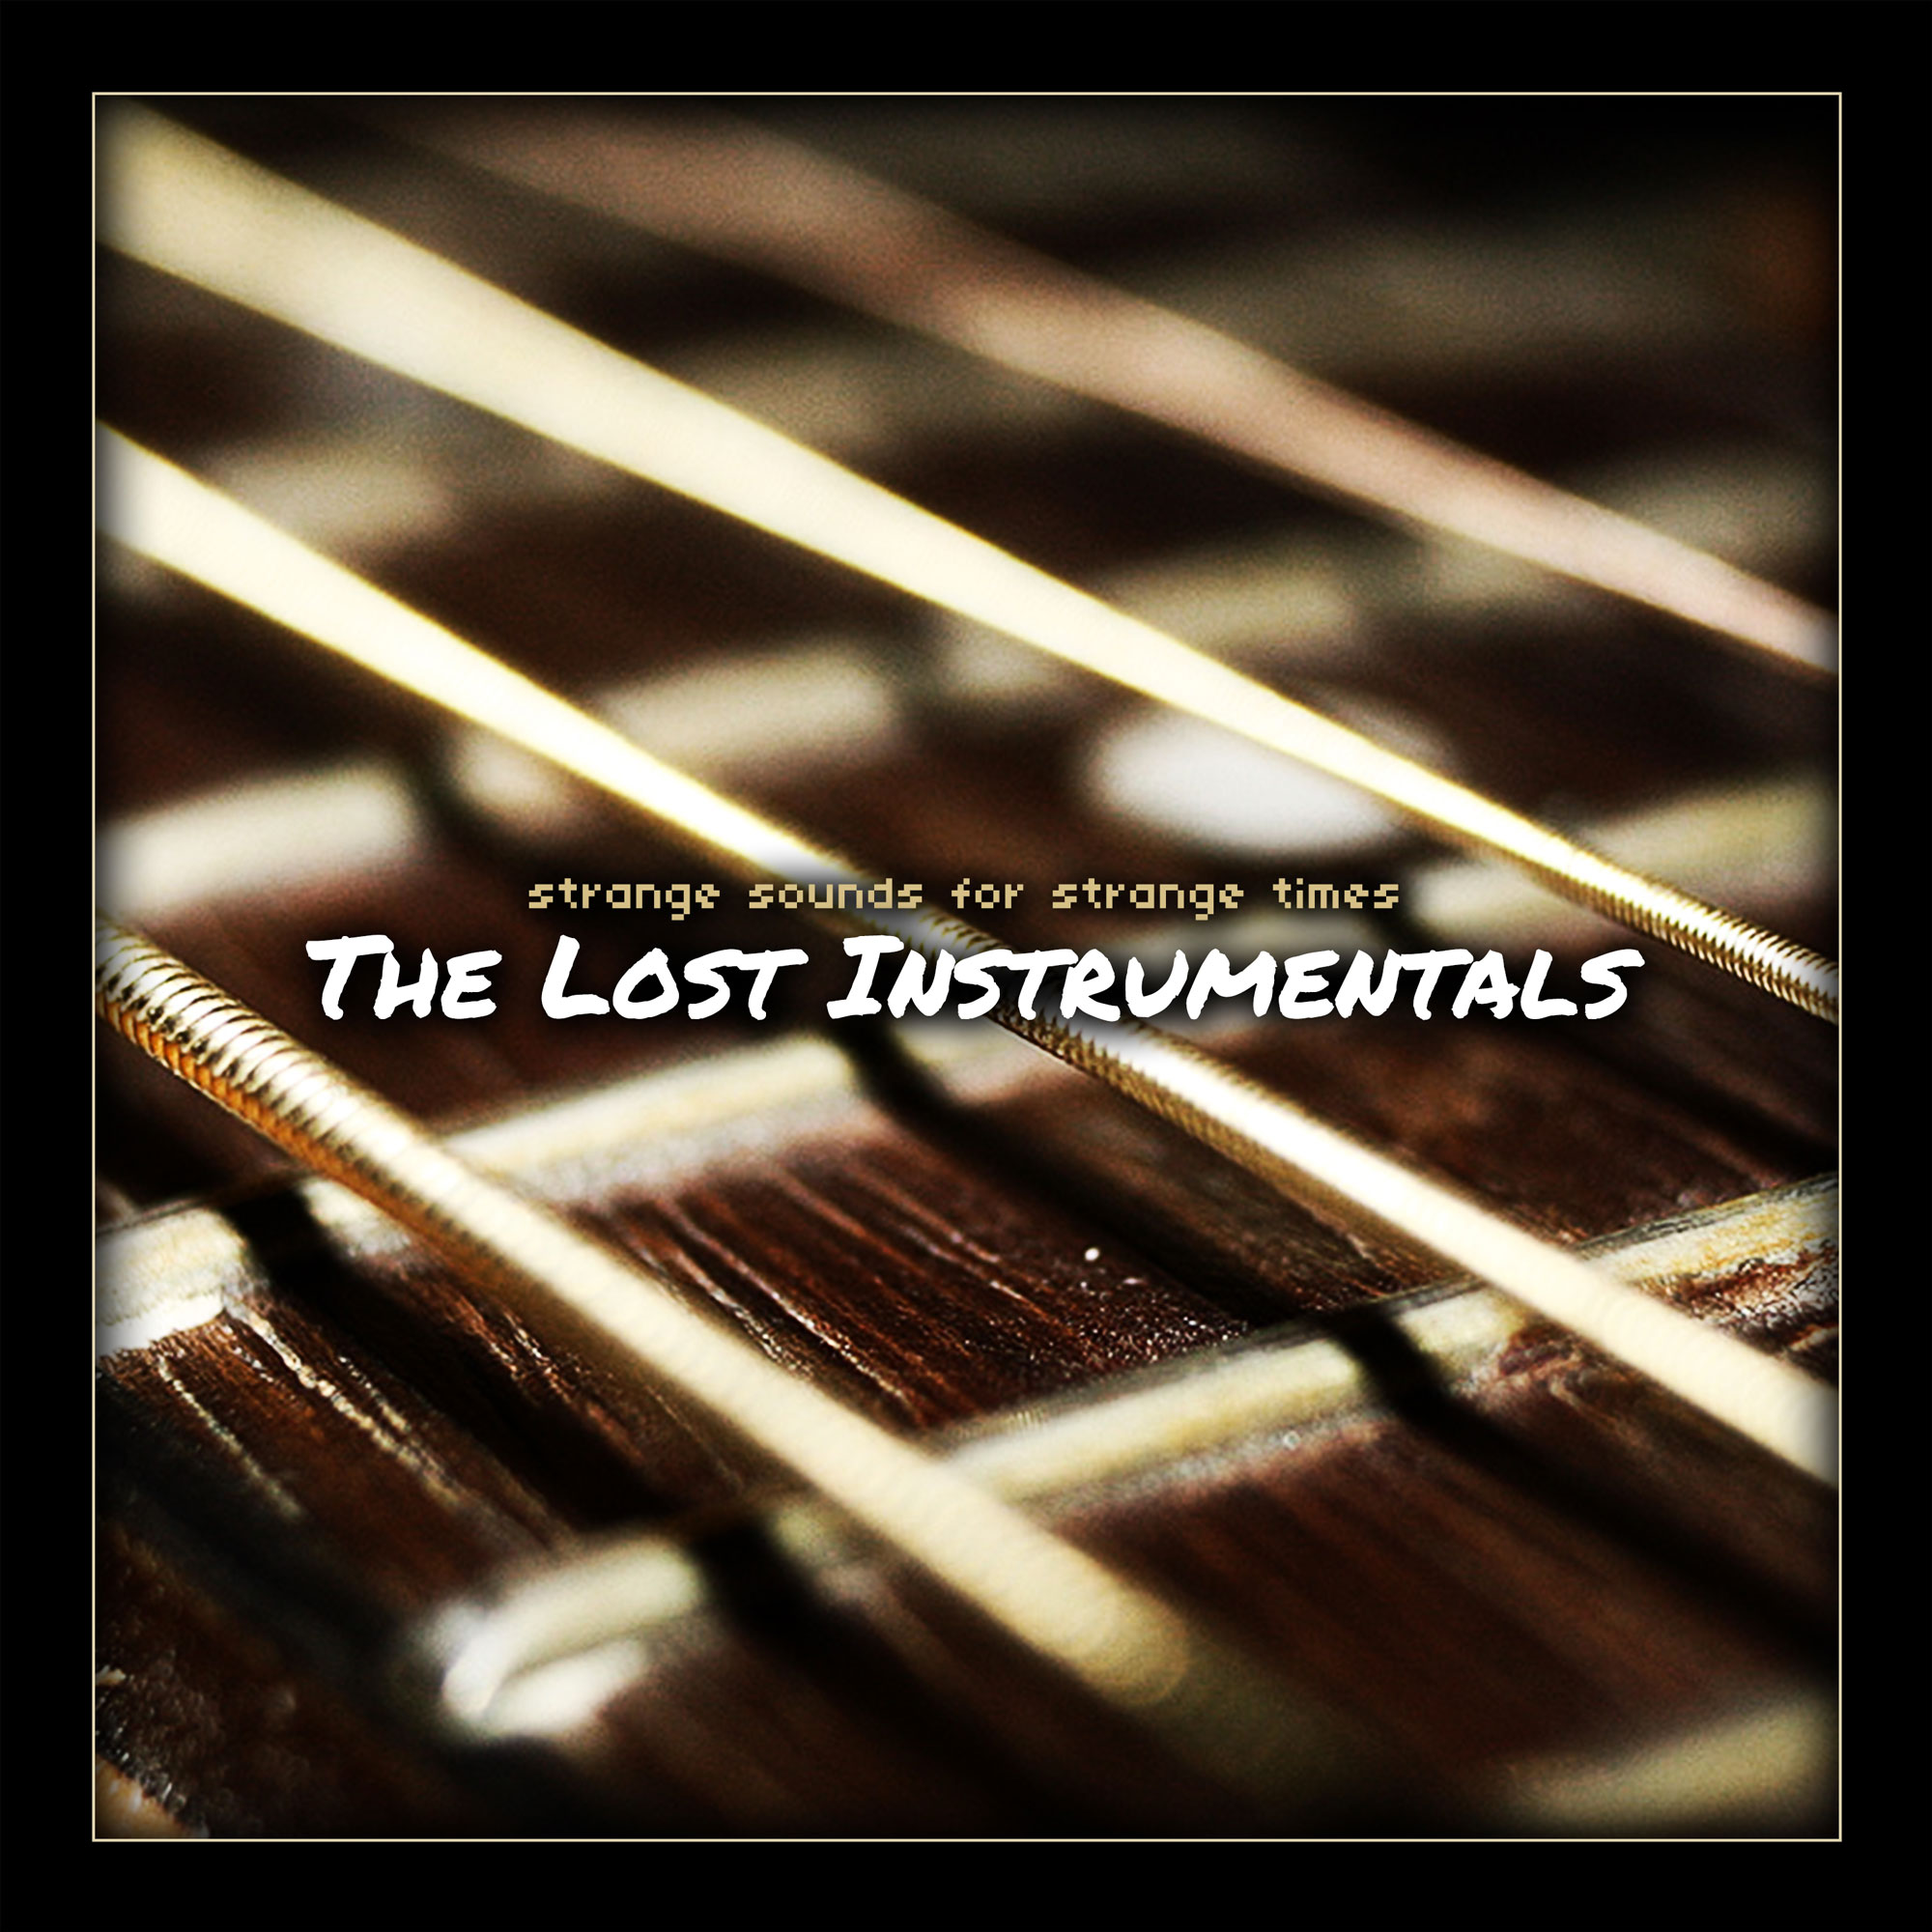 The Lost Instrumentals - Album Art - Strange Sounds for Strange Times - Anthony Carrozzo music